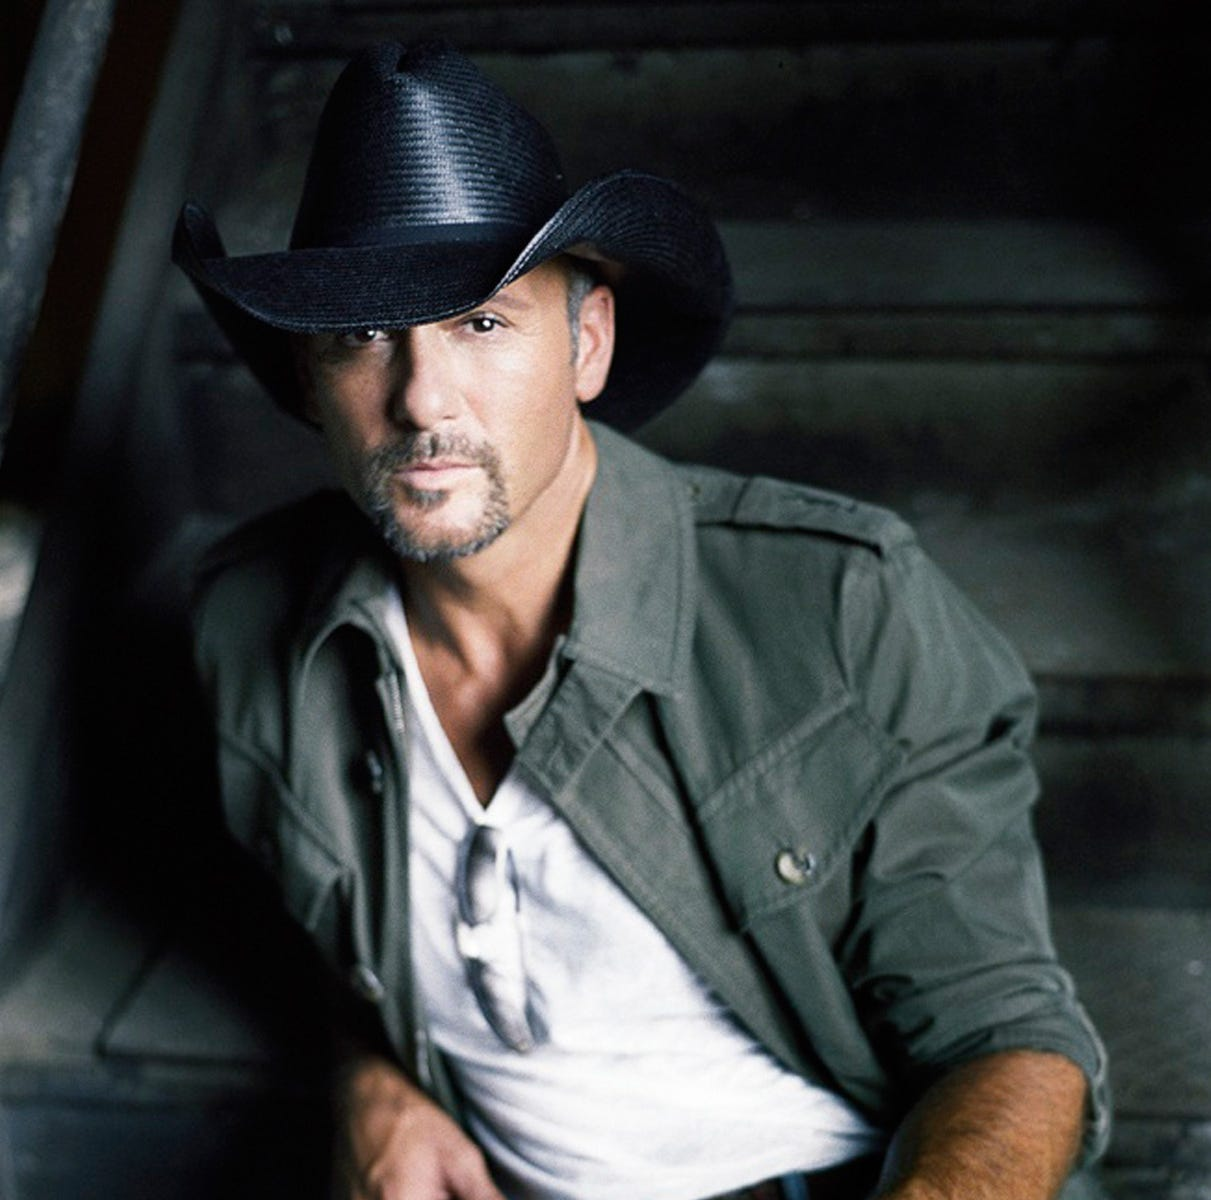 Concert announcements for Phoenix: Tim McGraw at KNIX Bash, Guster, Mary J. Blige, Nas